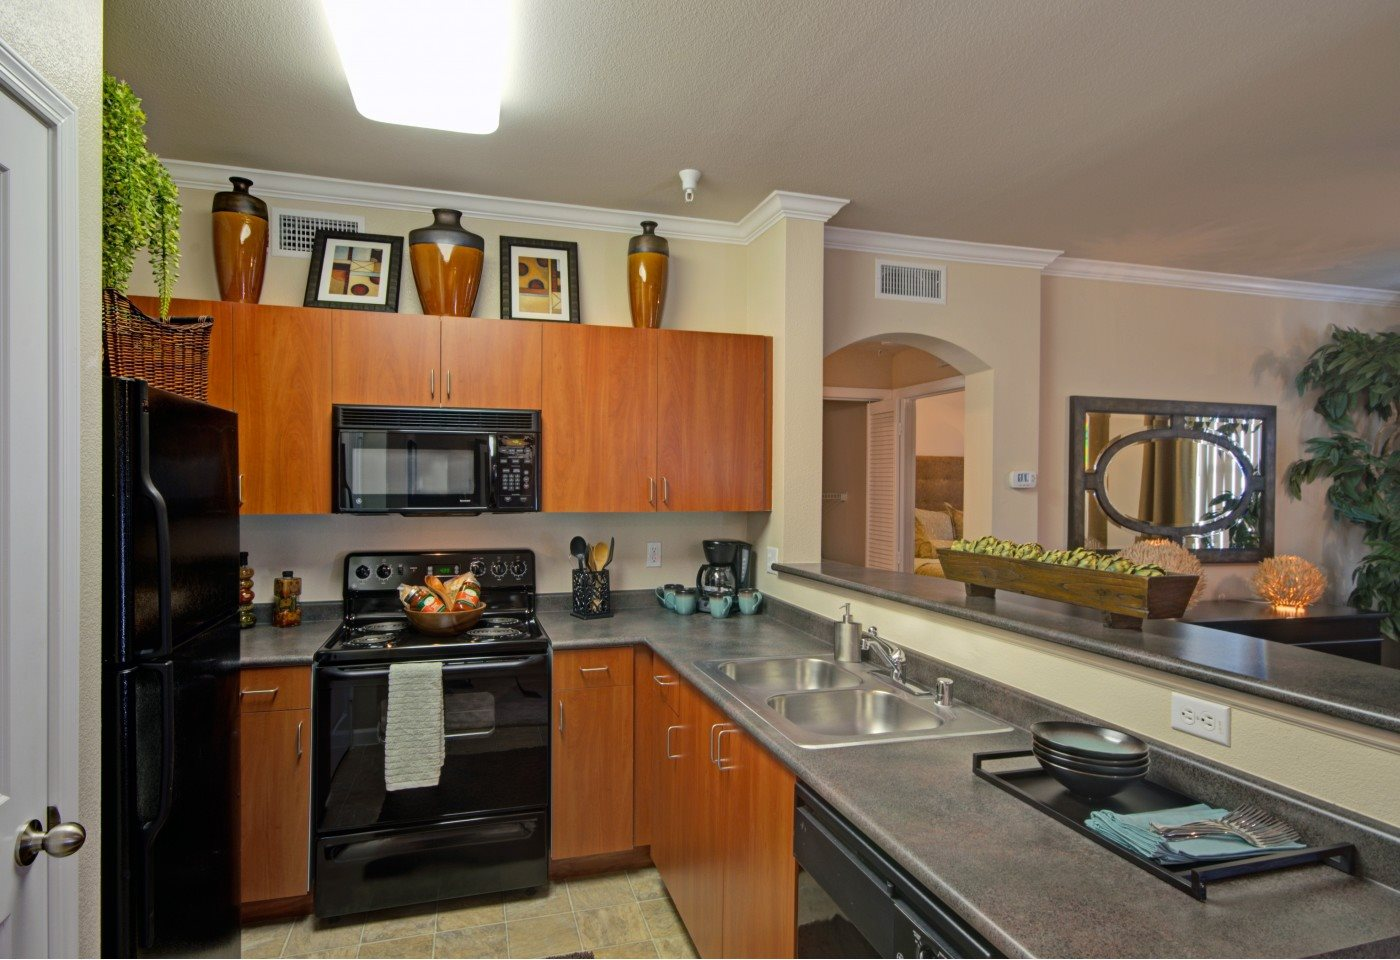 One bedroom kitchen at Ridgestone Apartments in Lake Elsinore CA